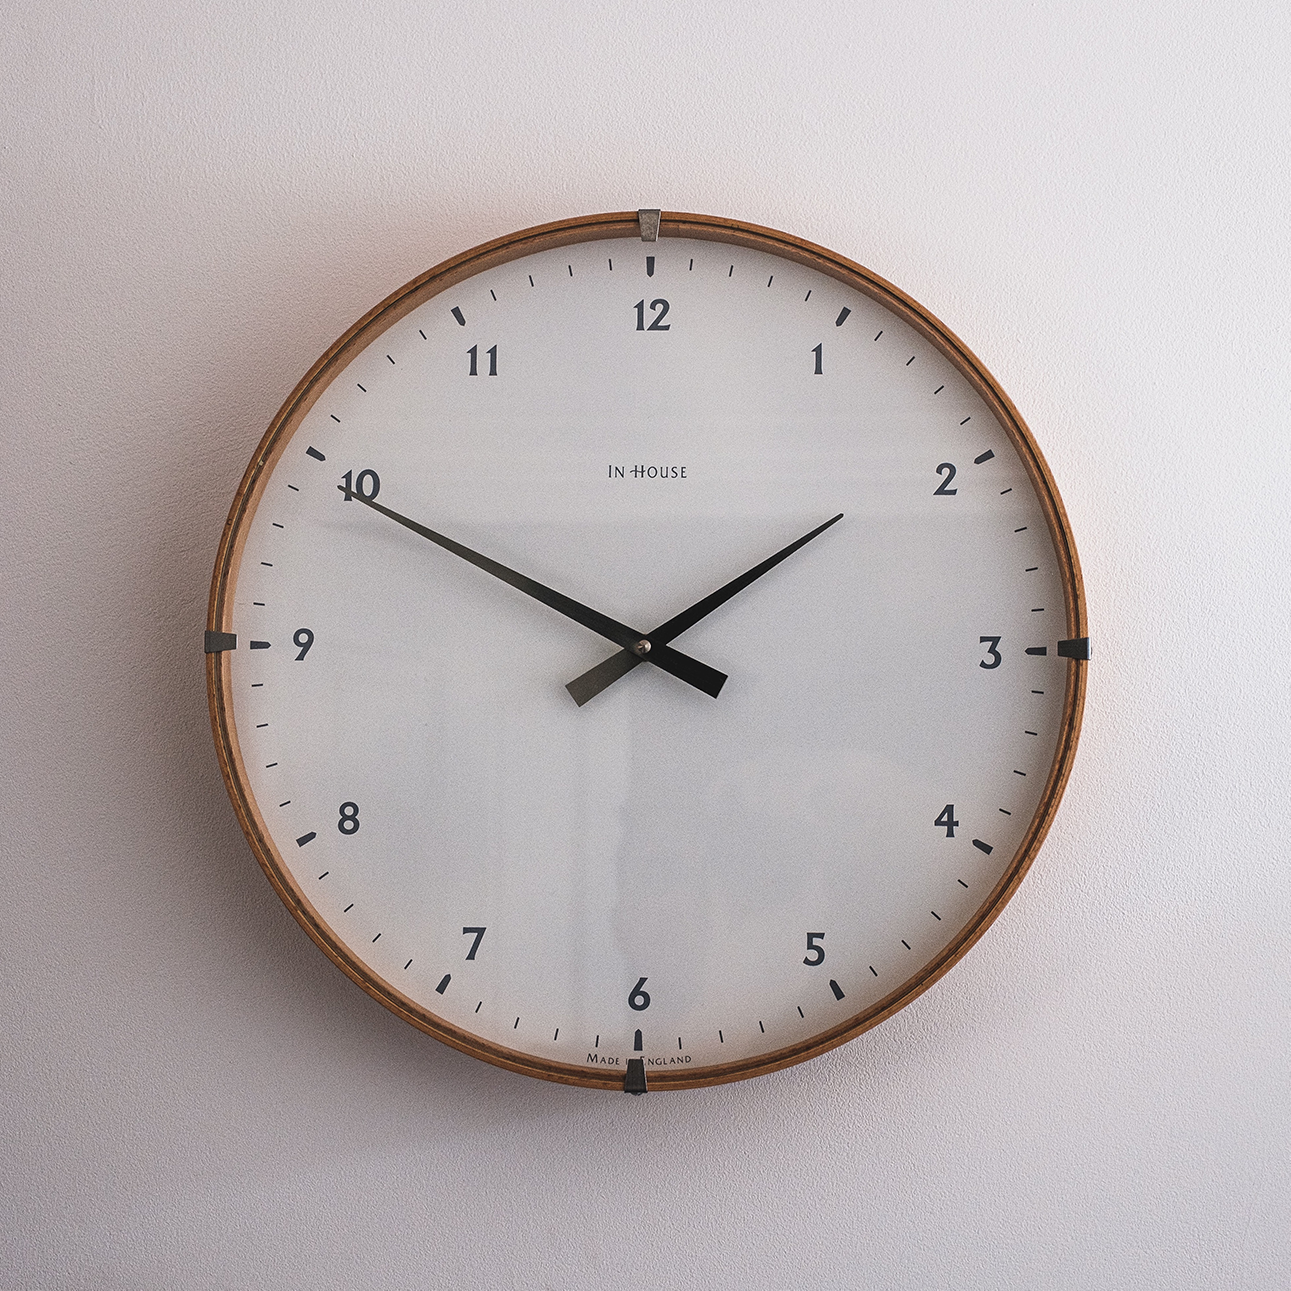 Analog clock mounted on the wall reading one fifty in the afternoon.